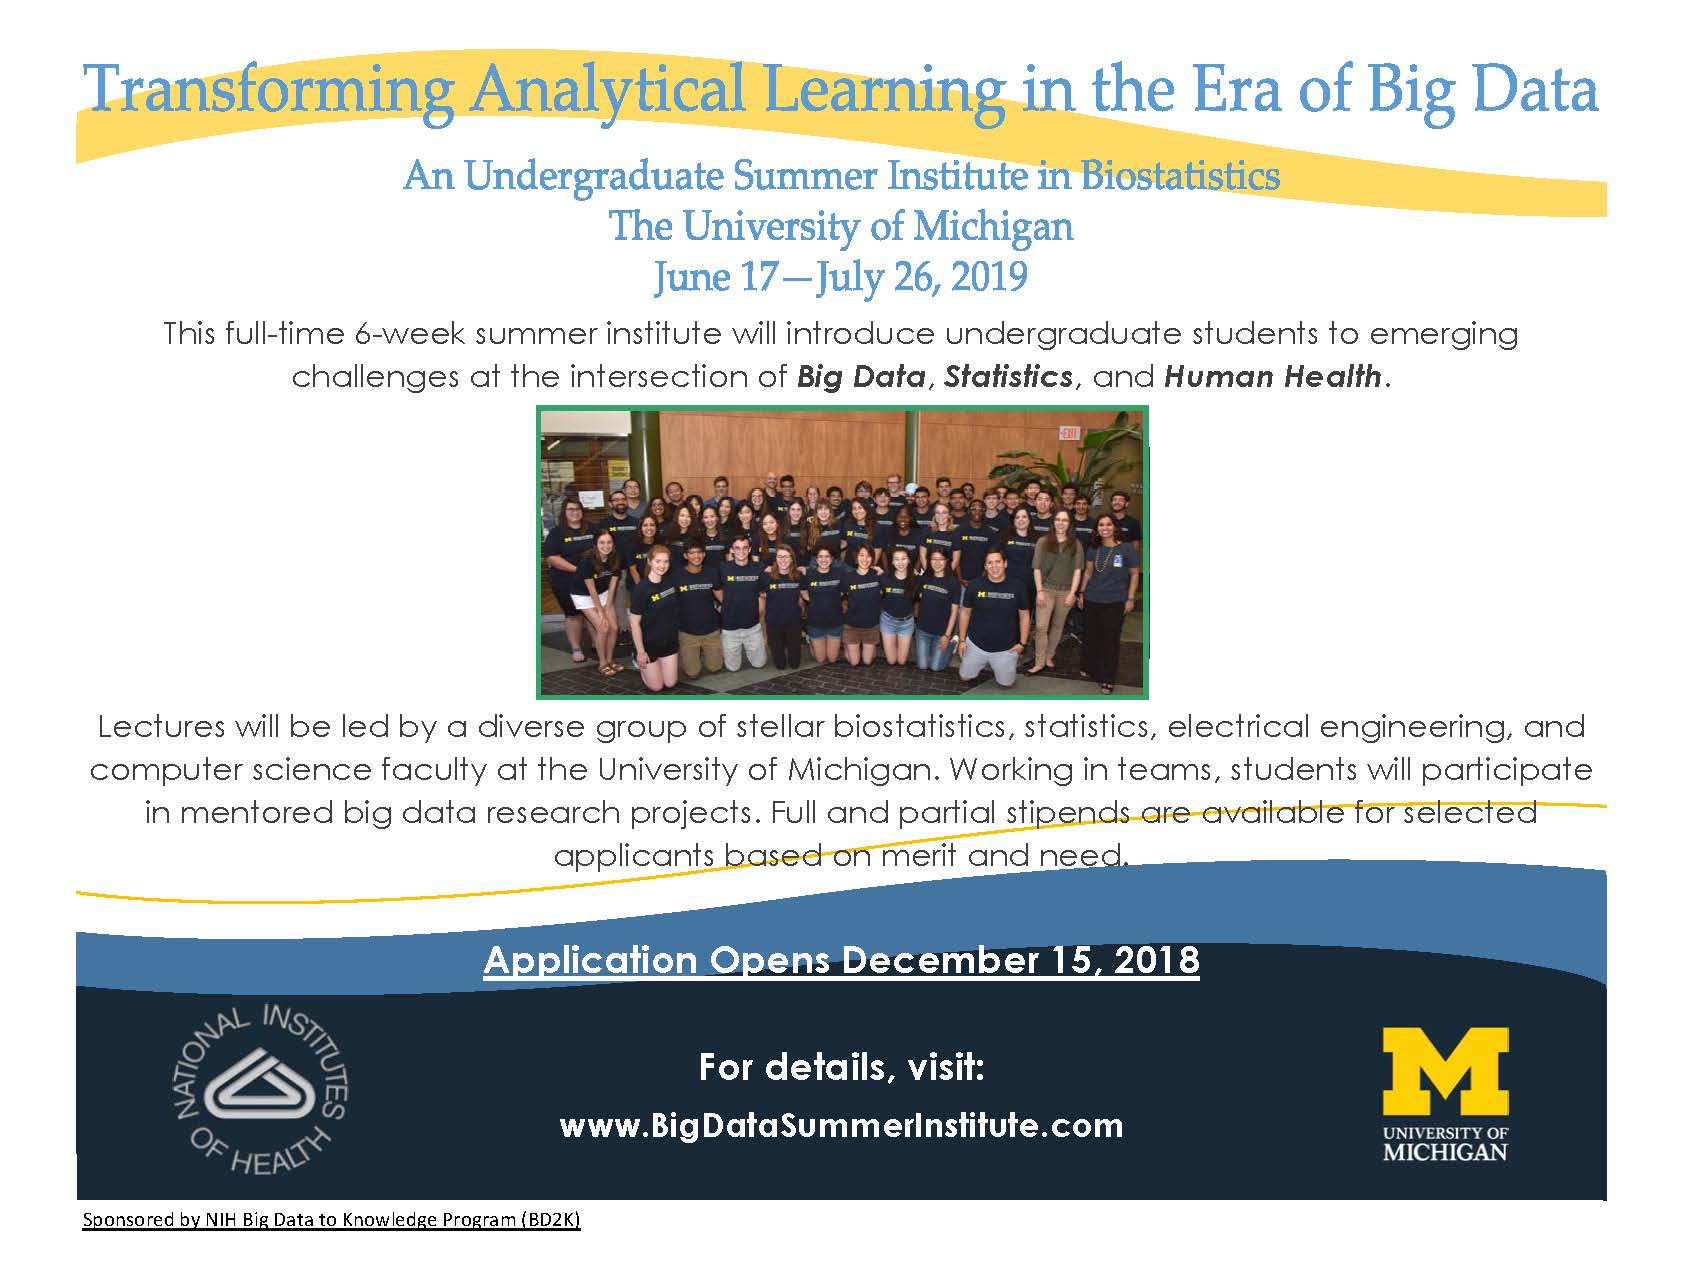 Analytical Learning expired) undergrad summer institute- transforming analytical